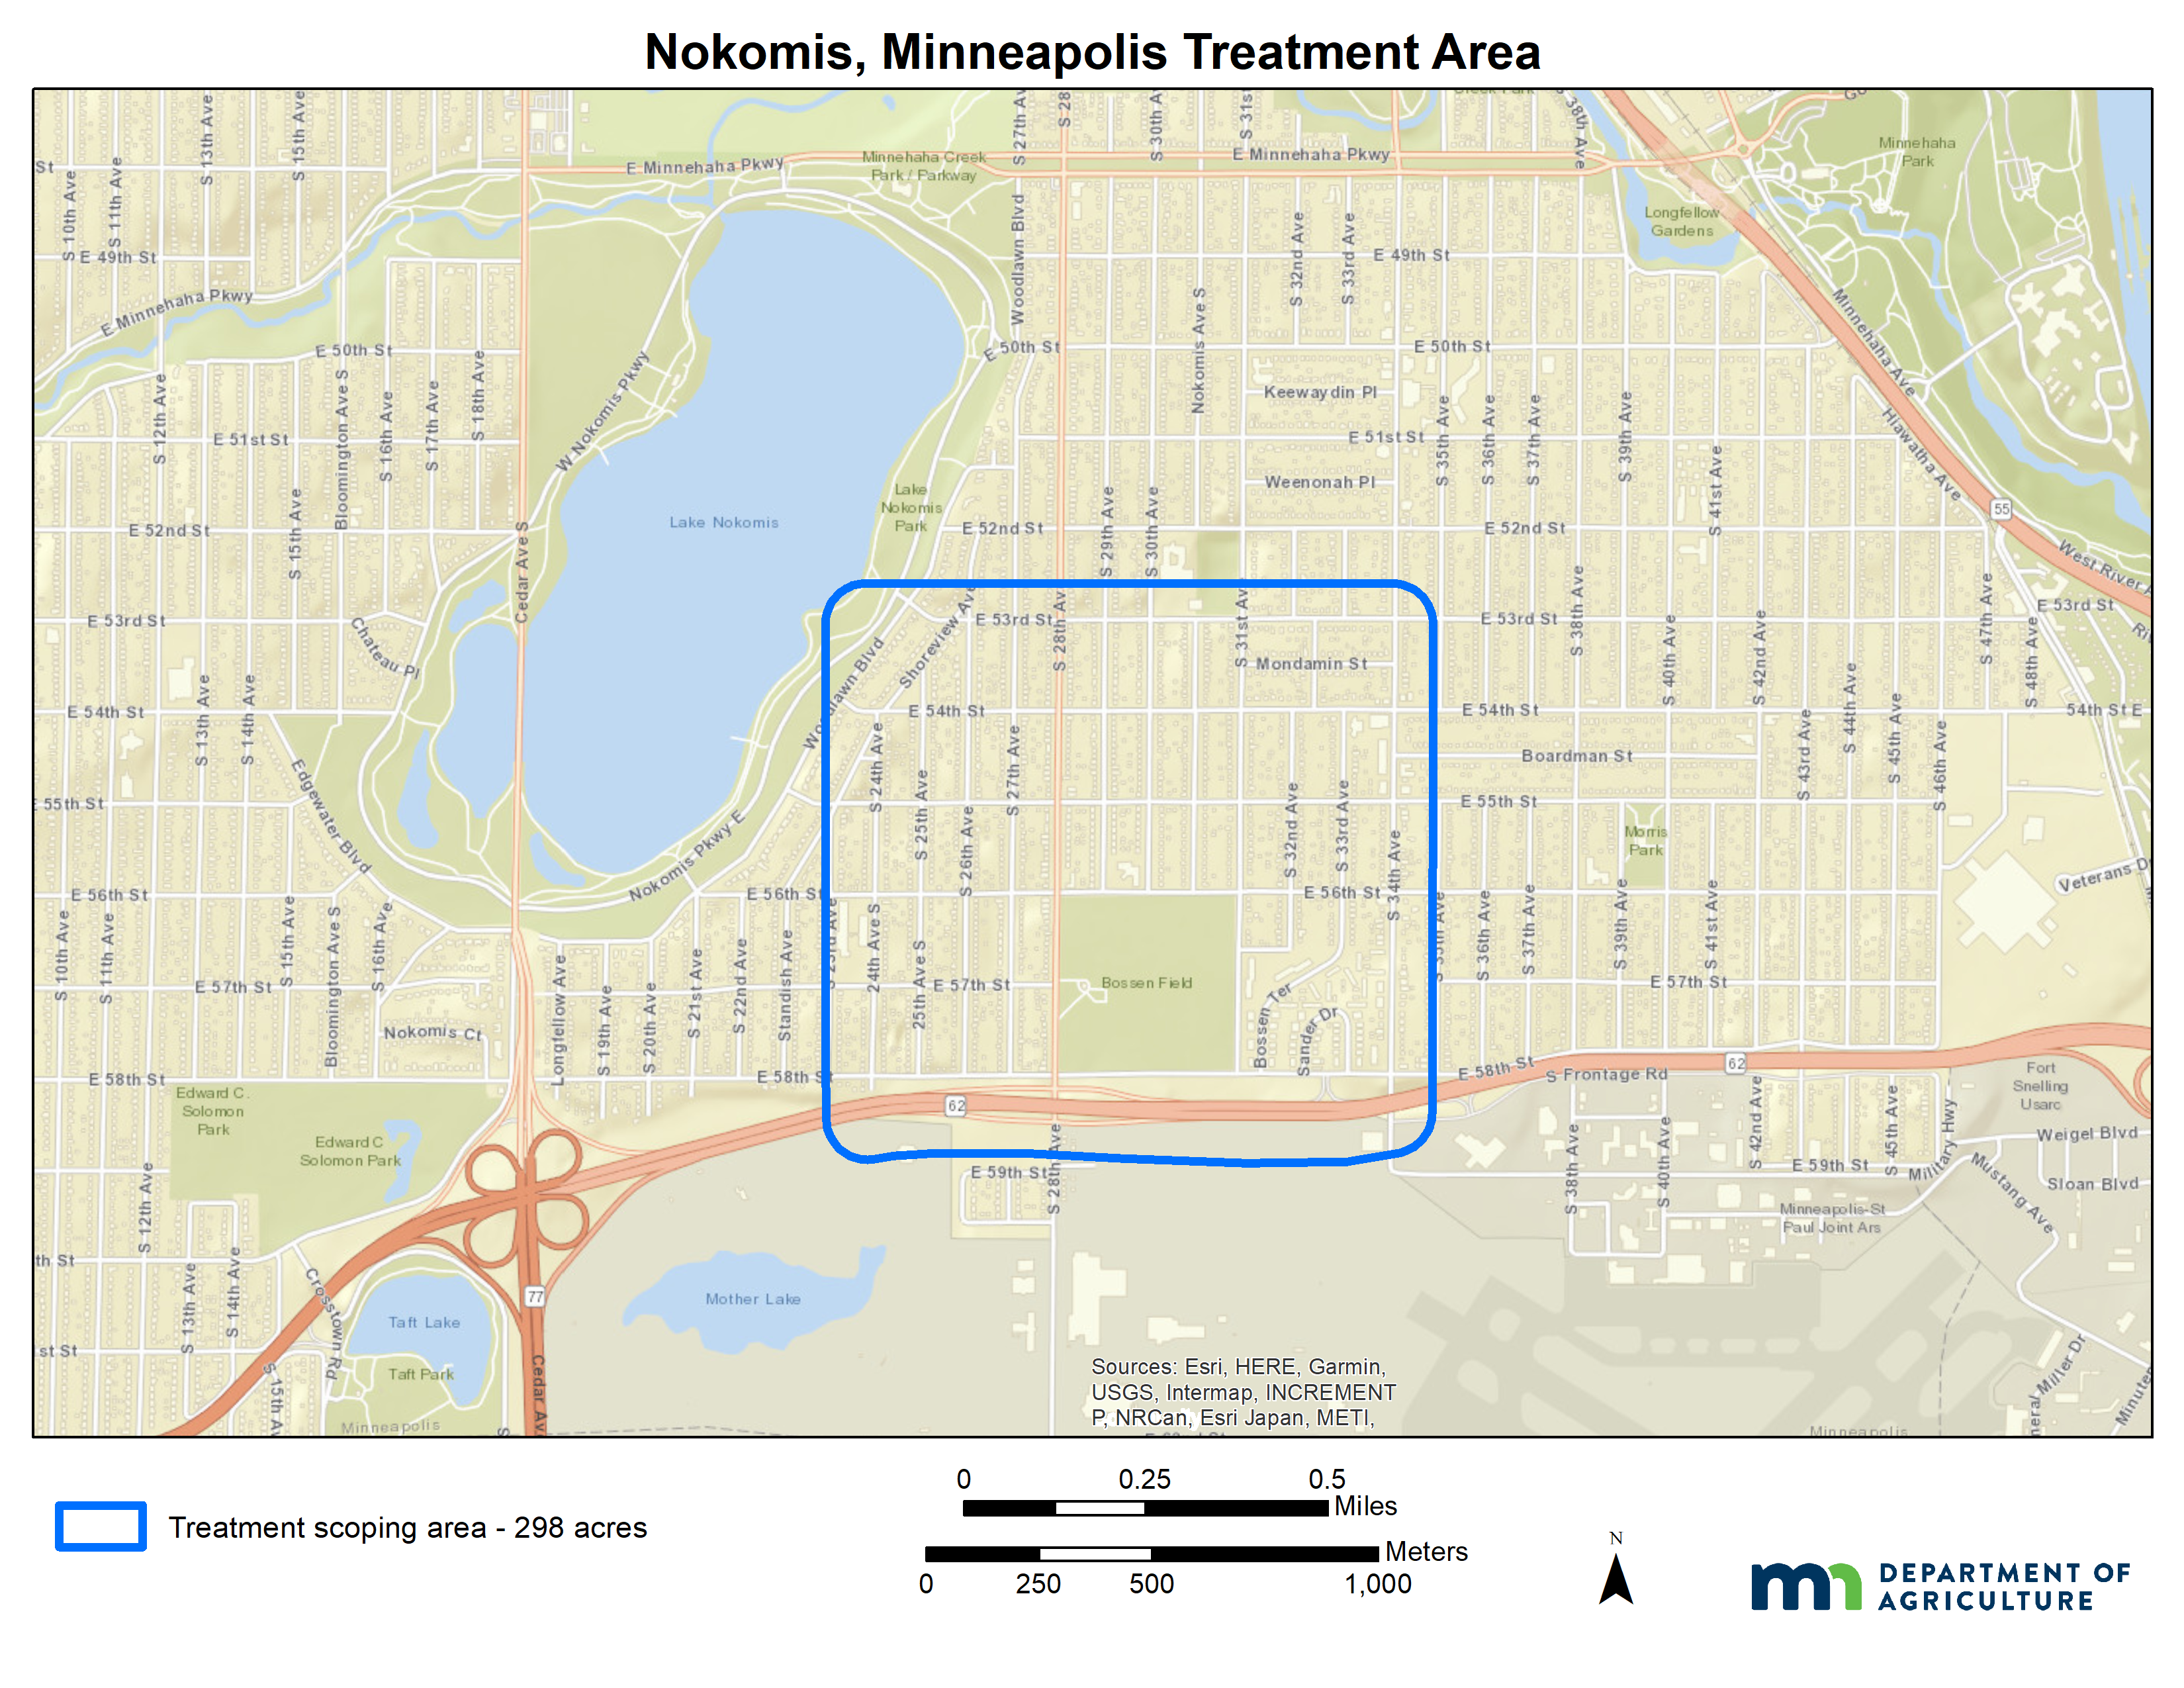 Nokomis gypsy moth treatment area